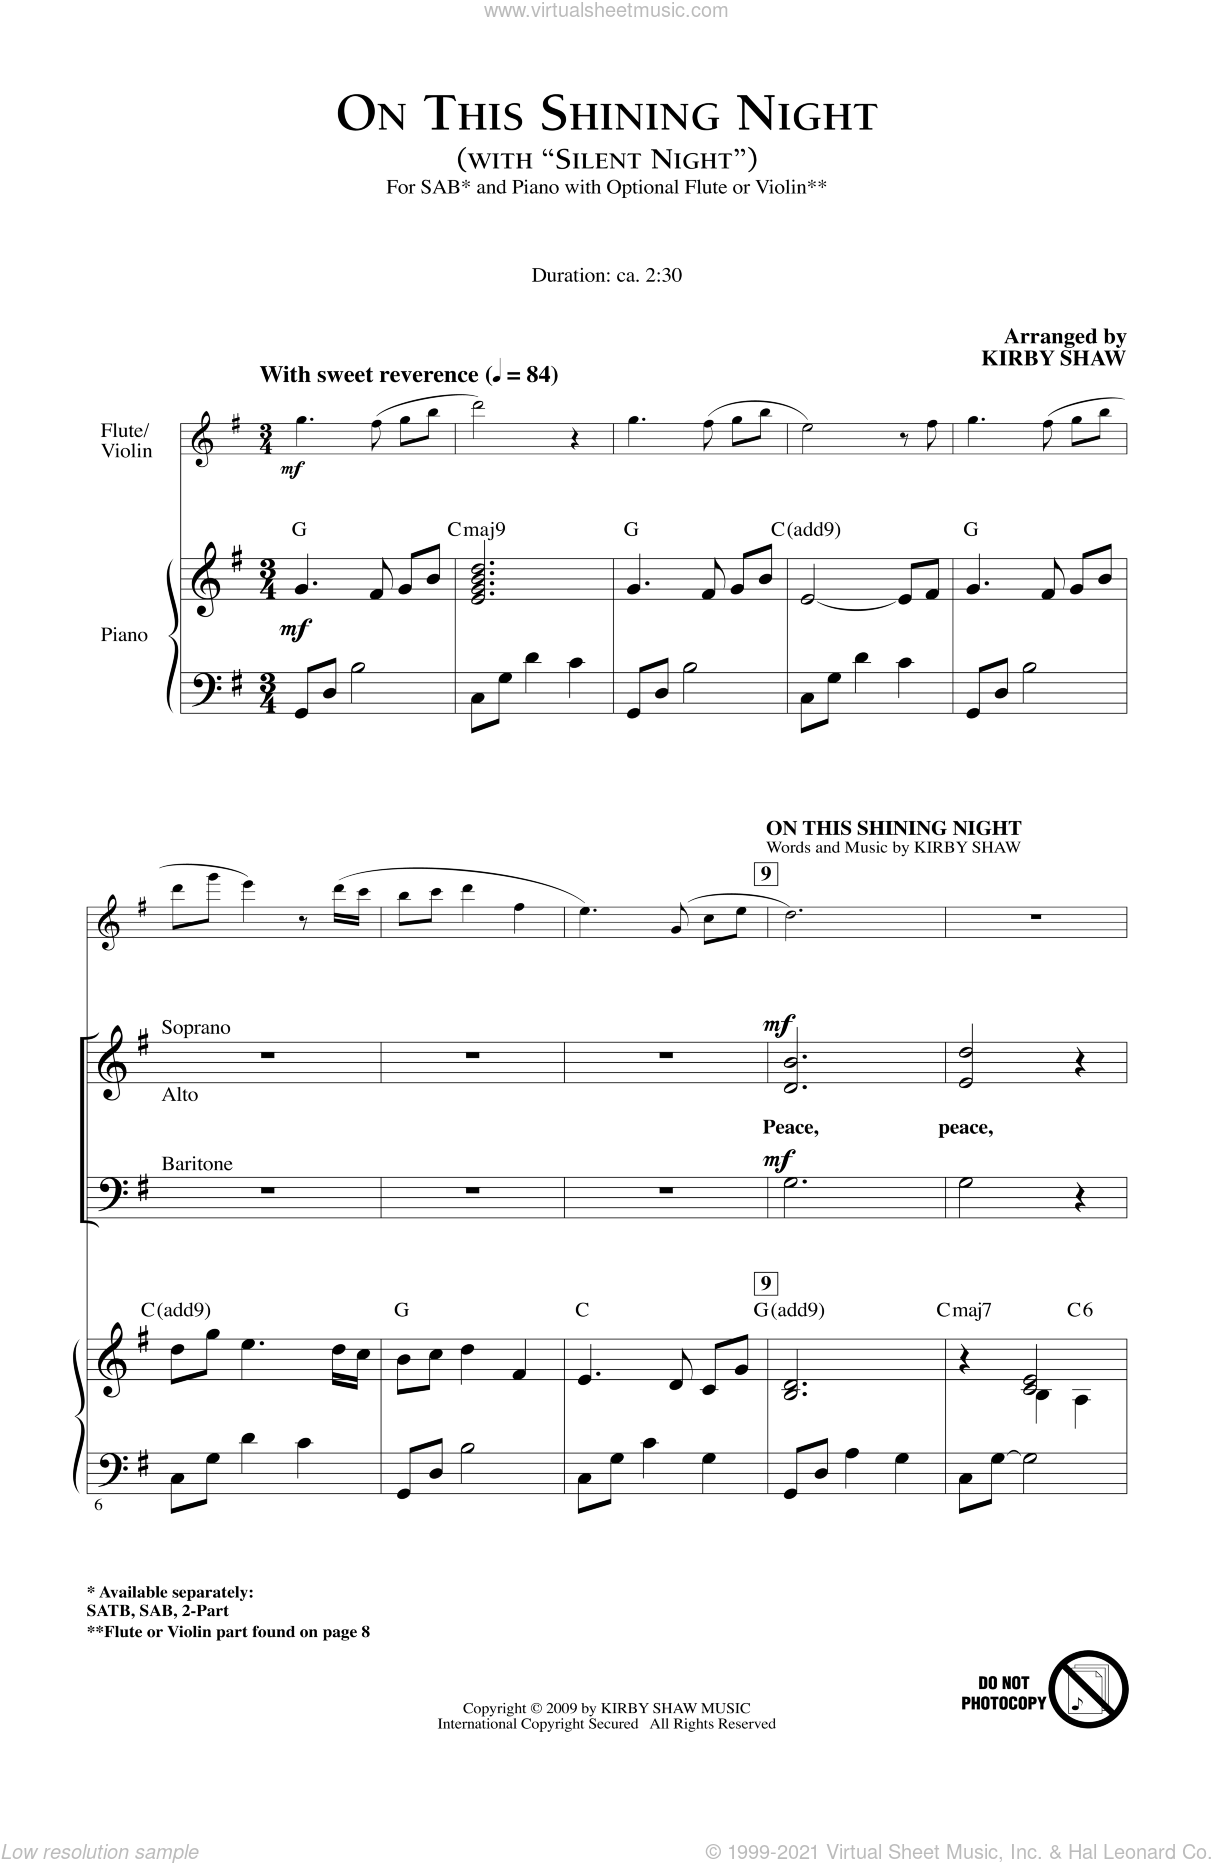 On This Shining Night (with Silent Night) sheet music for choir (SAB: soprano, alto, bass) by Kirby Shaw, intermediate skill level